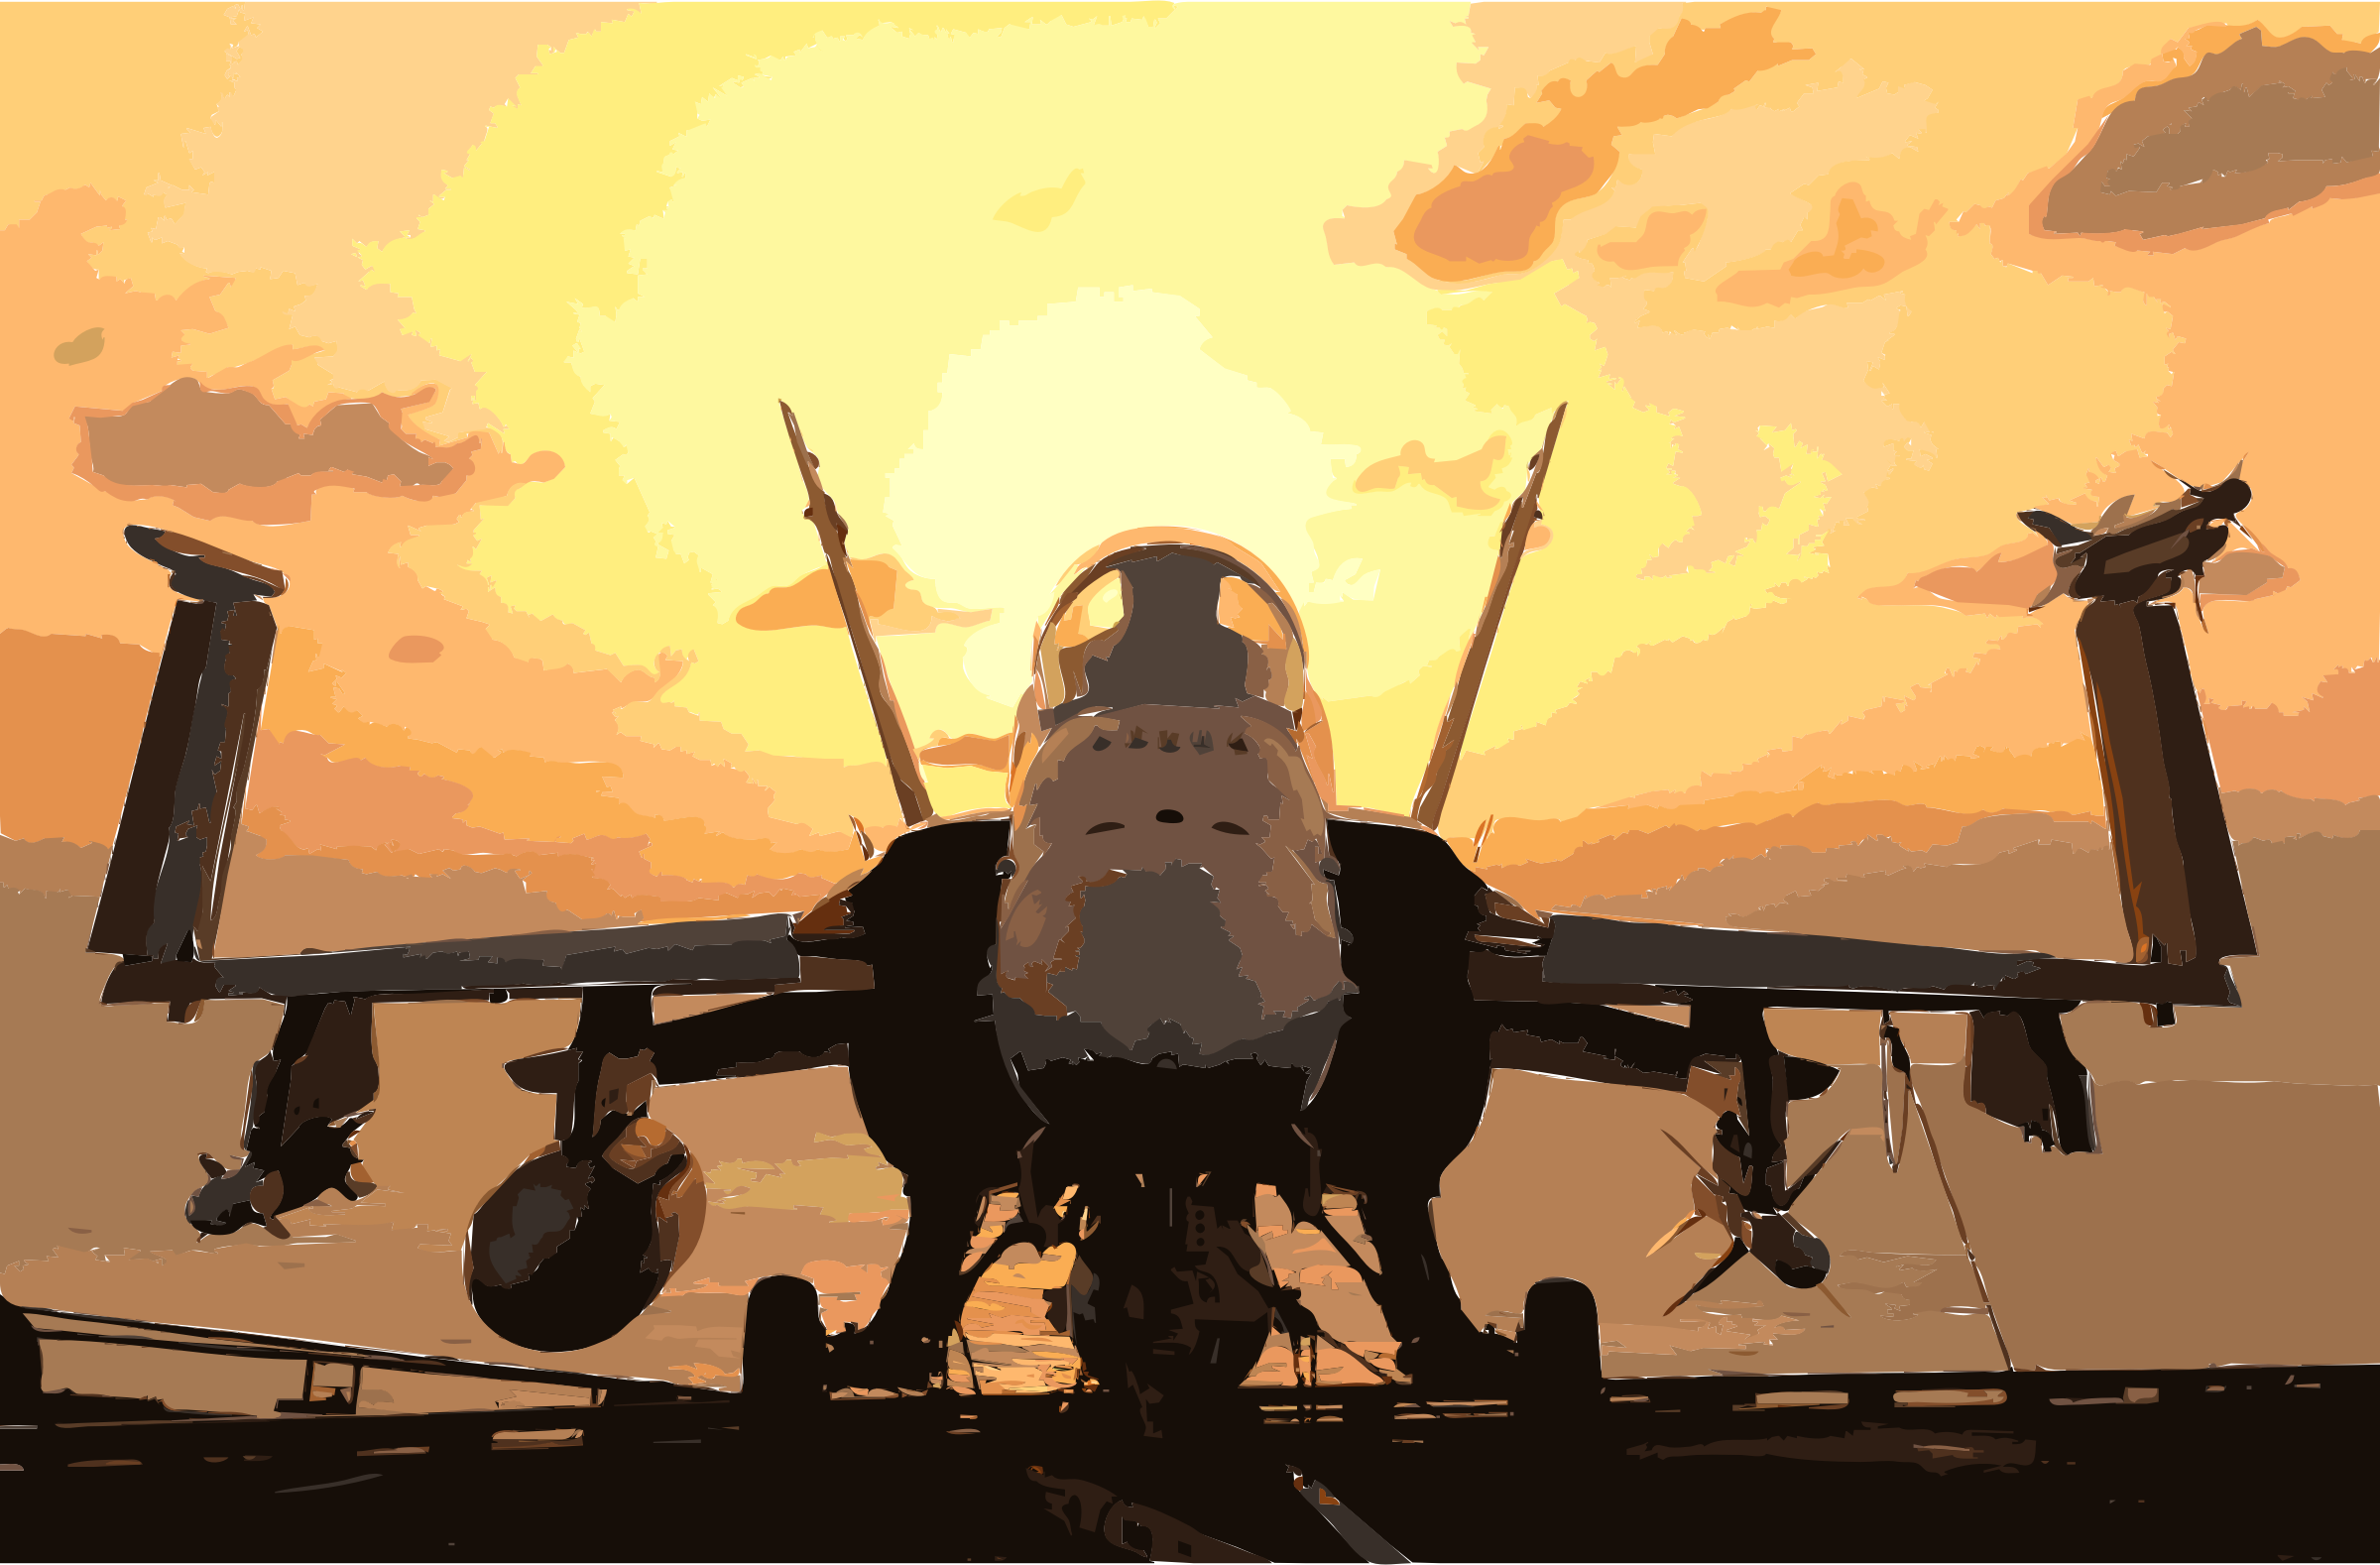 011218-N-9769P-047 F-A-18 With Weapons Ready for Mission by 3w7y6e+cf5zo76jvomsg